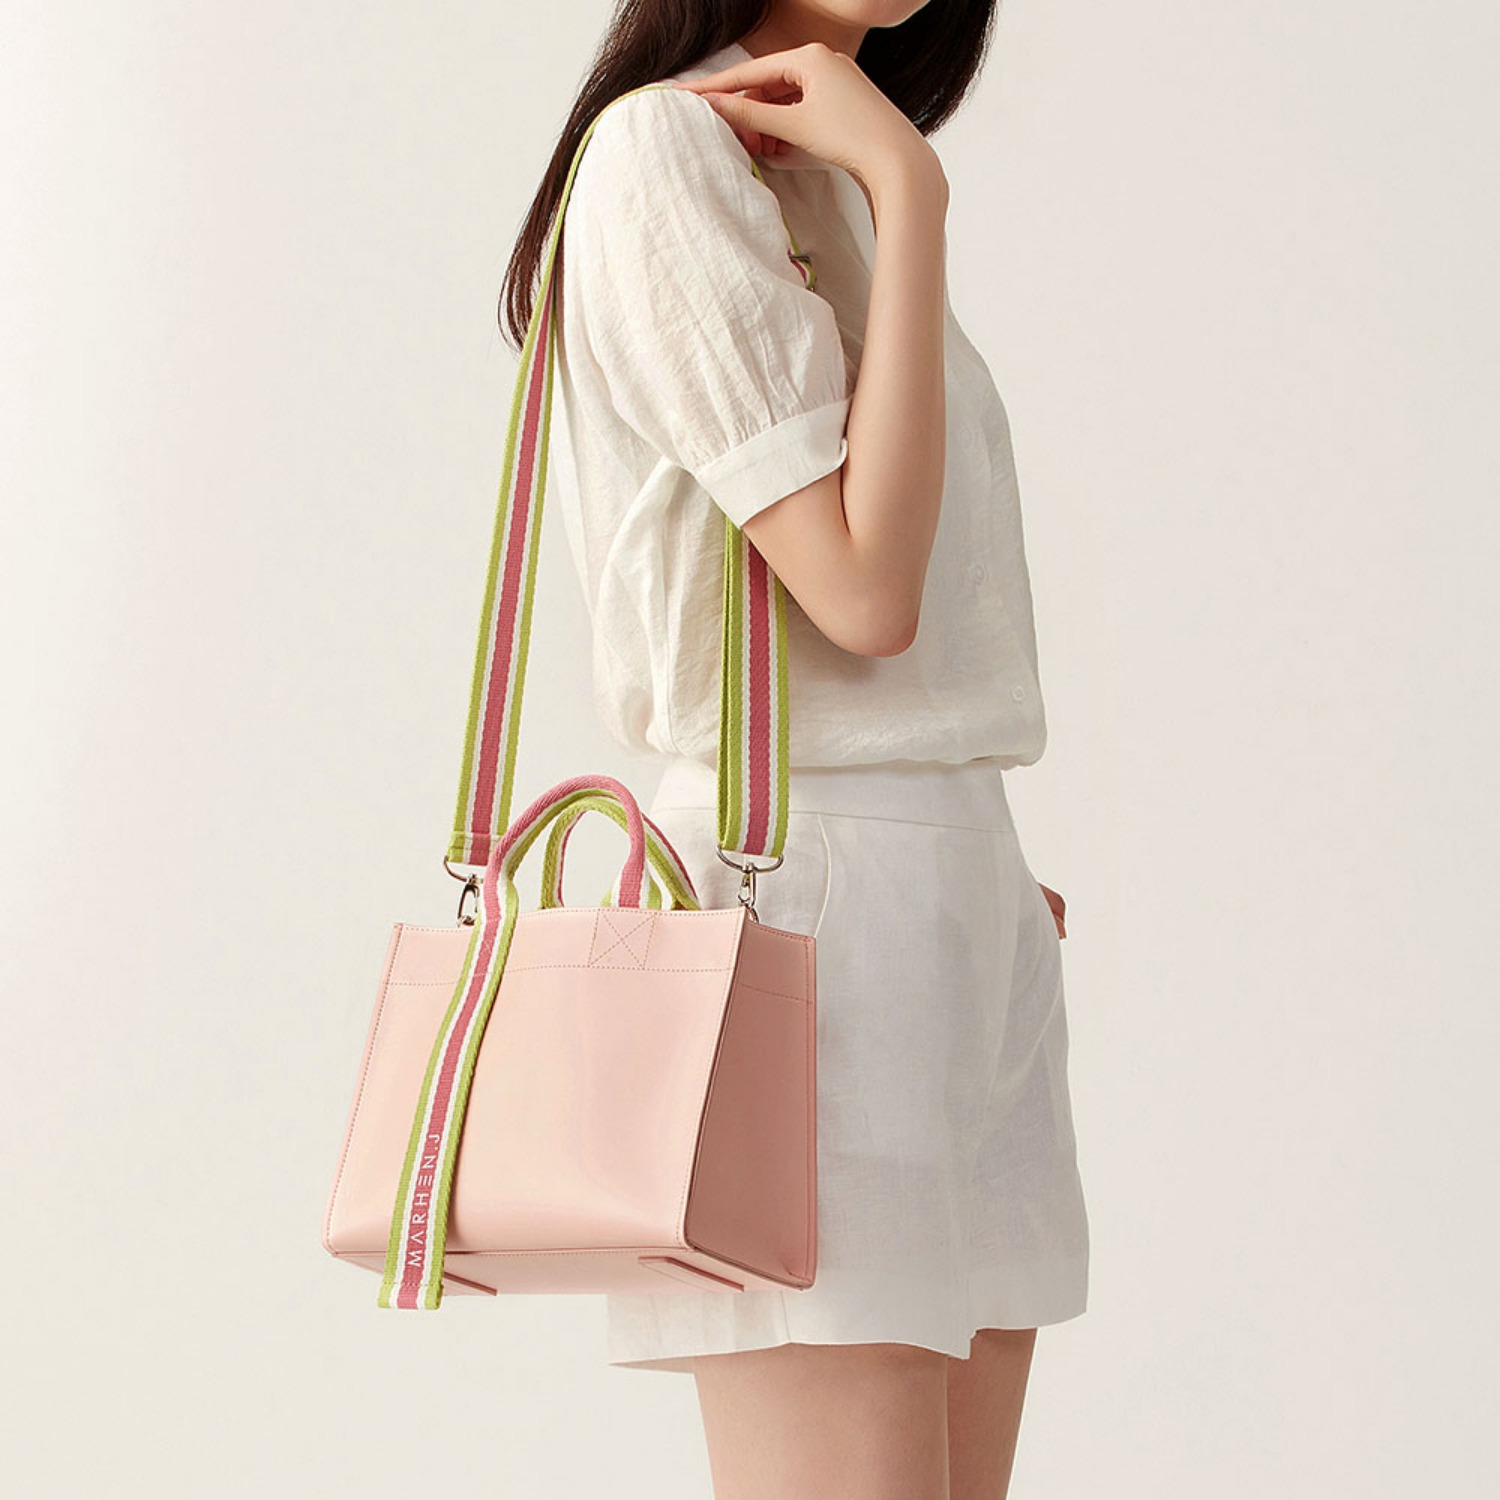 [1st][NEW] CINDY BAG PEACH PINK (Length adjustable strap is included)